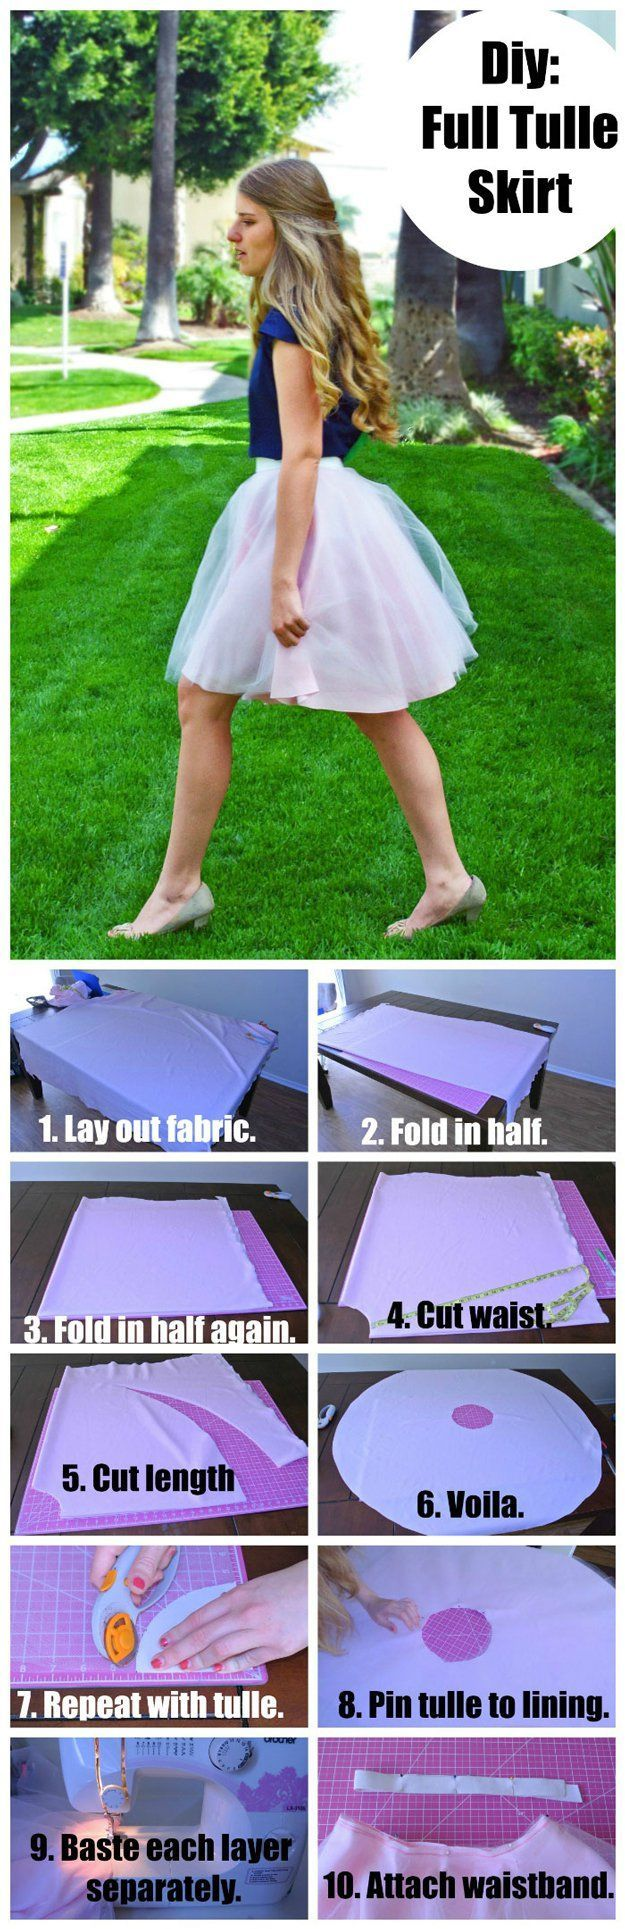 DIY Full Tulle Skirt - Easy and Simple Step by Step DIY Skirt Project